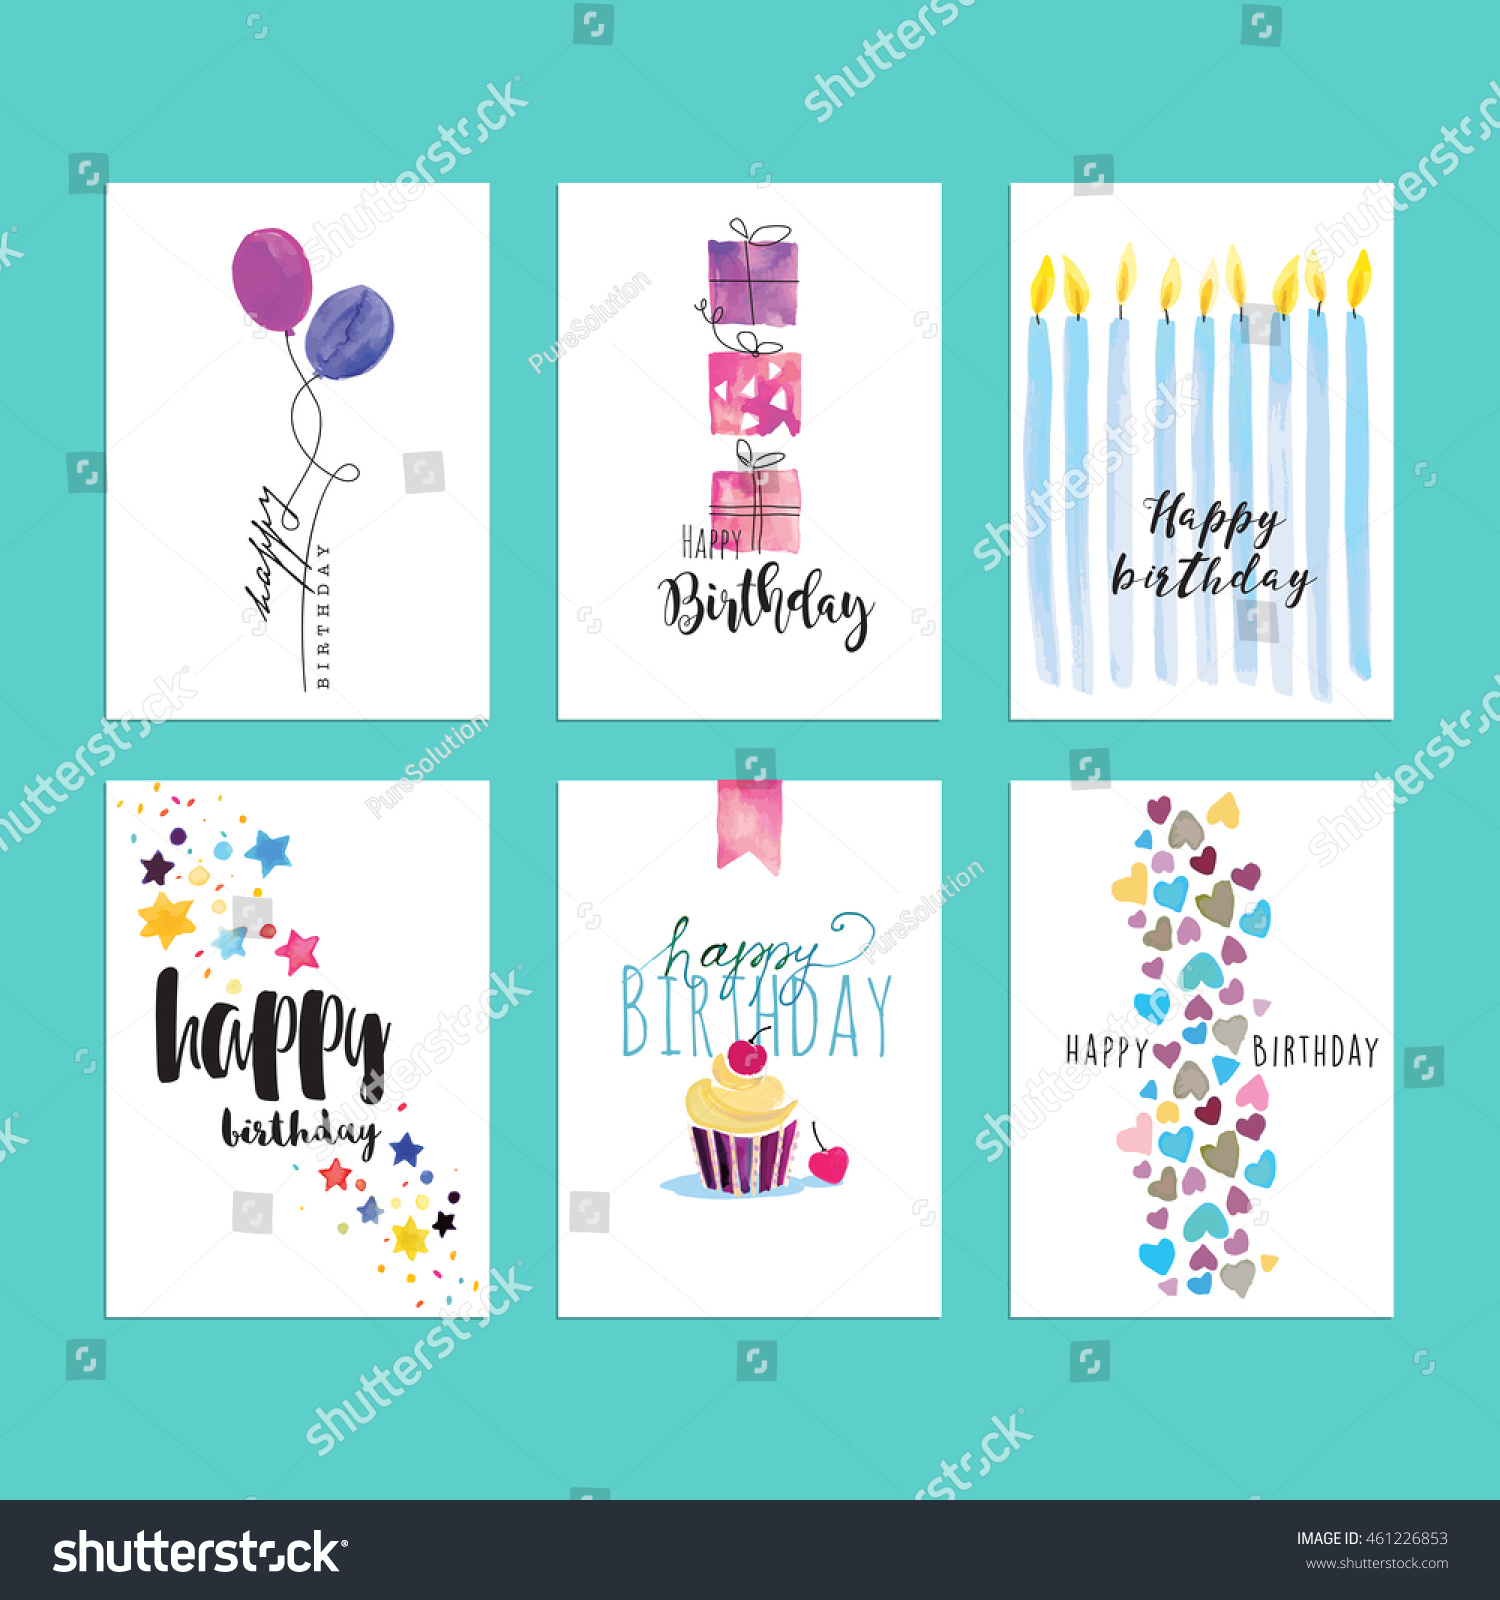 Hand Drawn Watercolor Birthday Greeting Cards Stock Vector